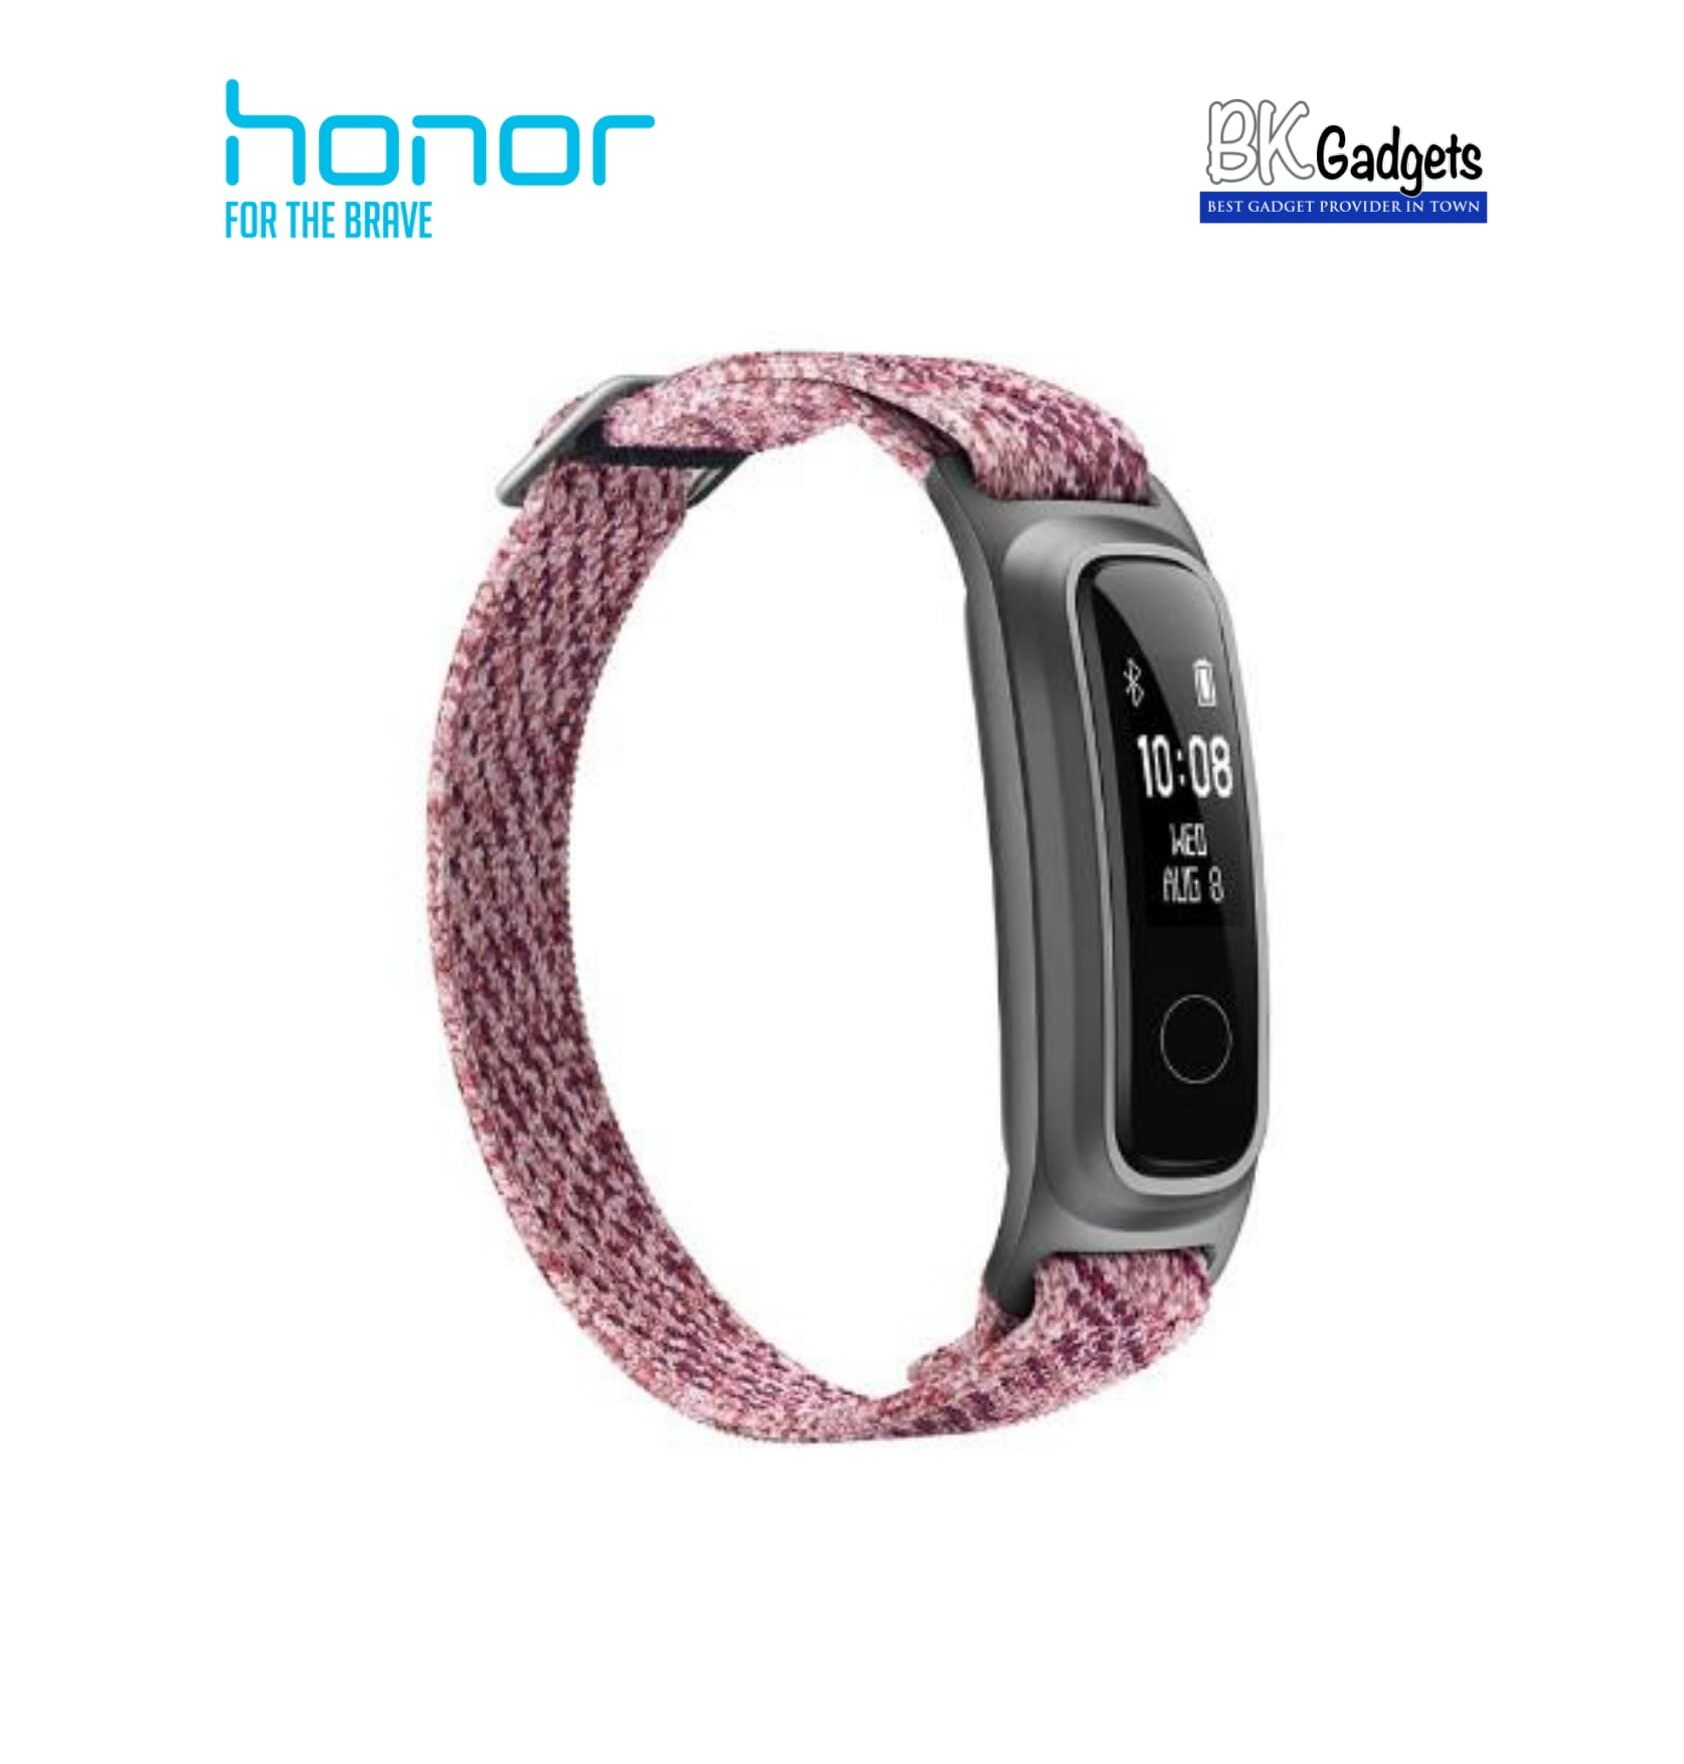 HONOR BAND 5 Sport Wearable Fitness Tracker [ Sakura Pink ]